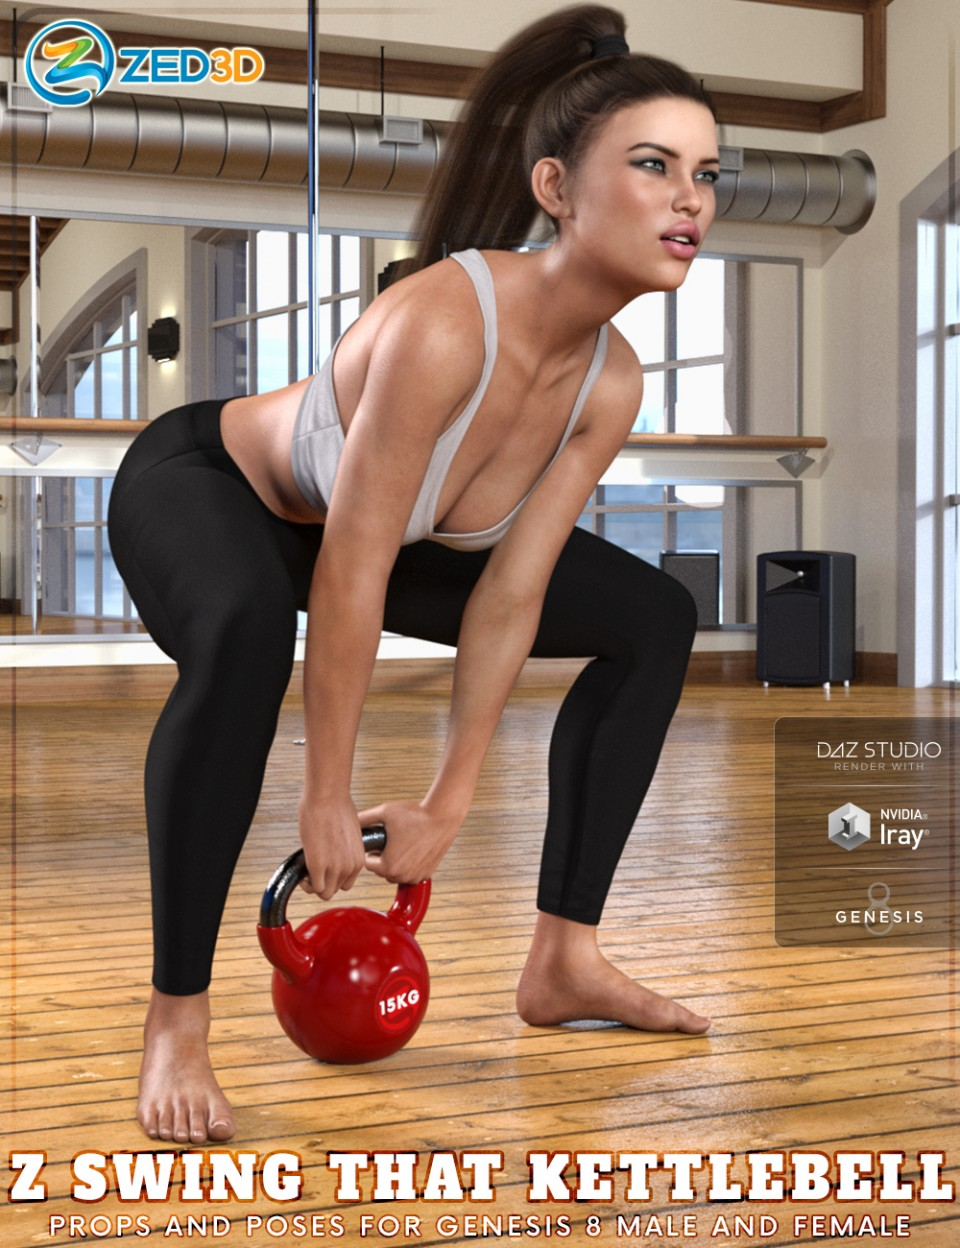 Z Swing That Kettlebell – Props and Poses for Genesis 8_DAZ3D下载站